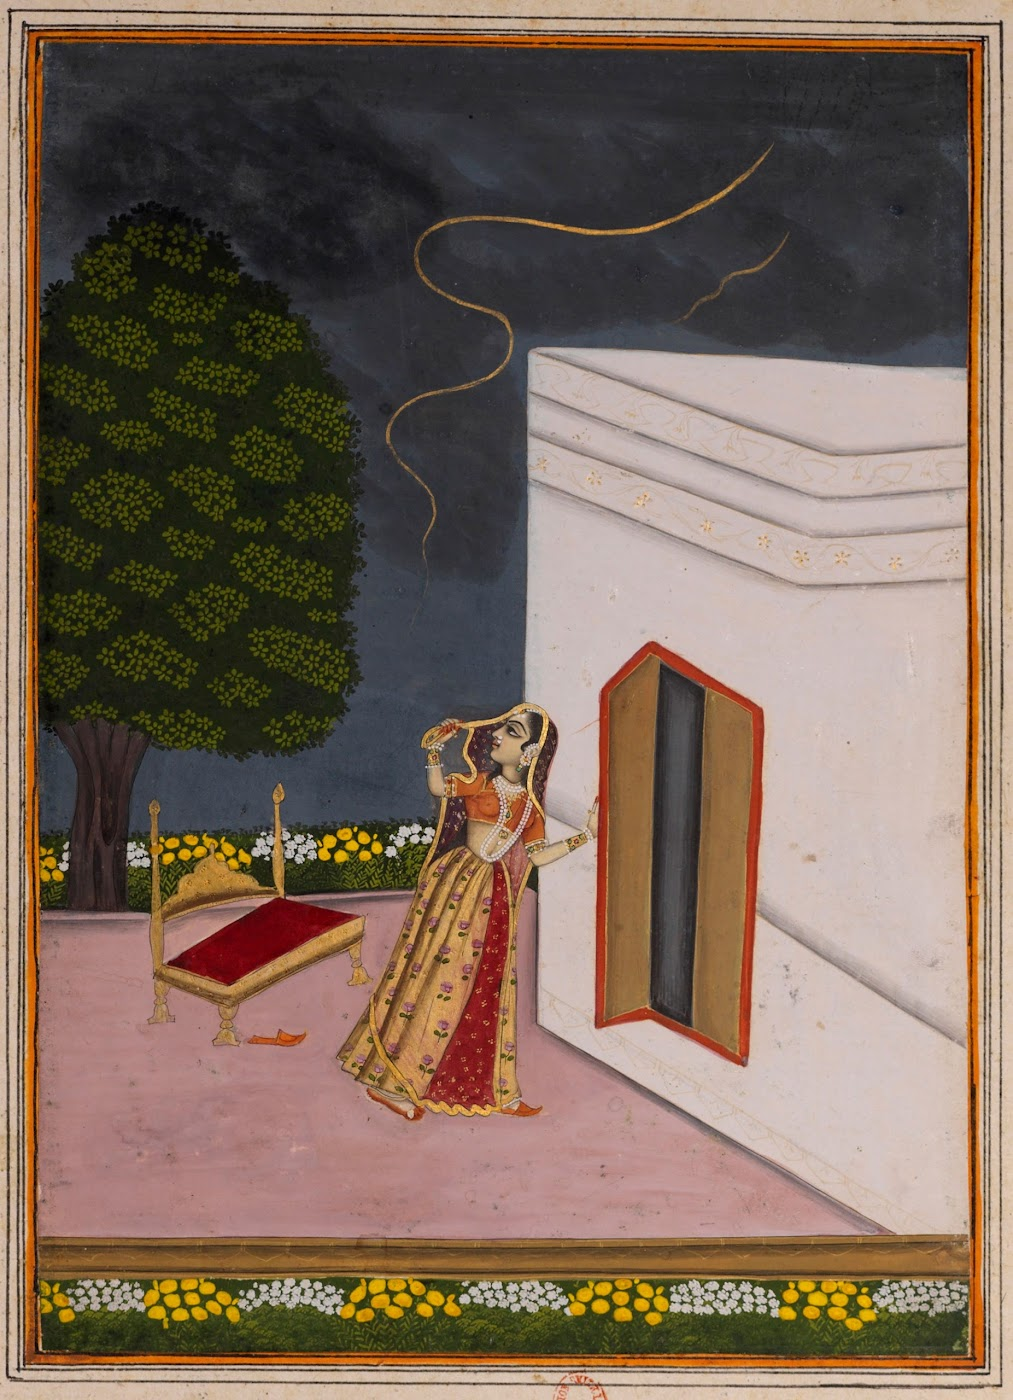 Lady Observing Lighting in the Sky - Rajput Ragamala Painting from a Manuscript, Circa 1800